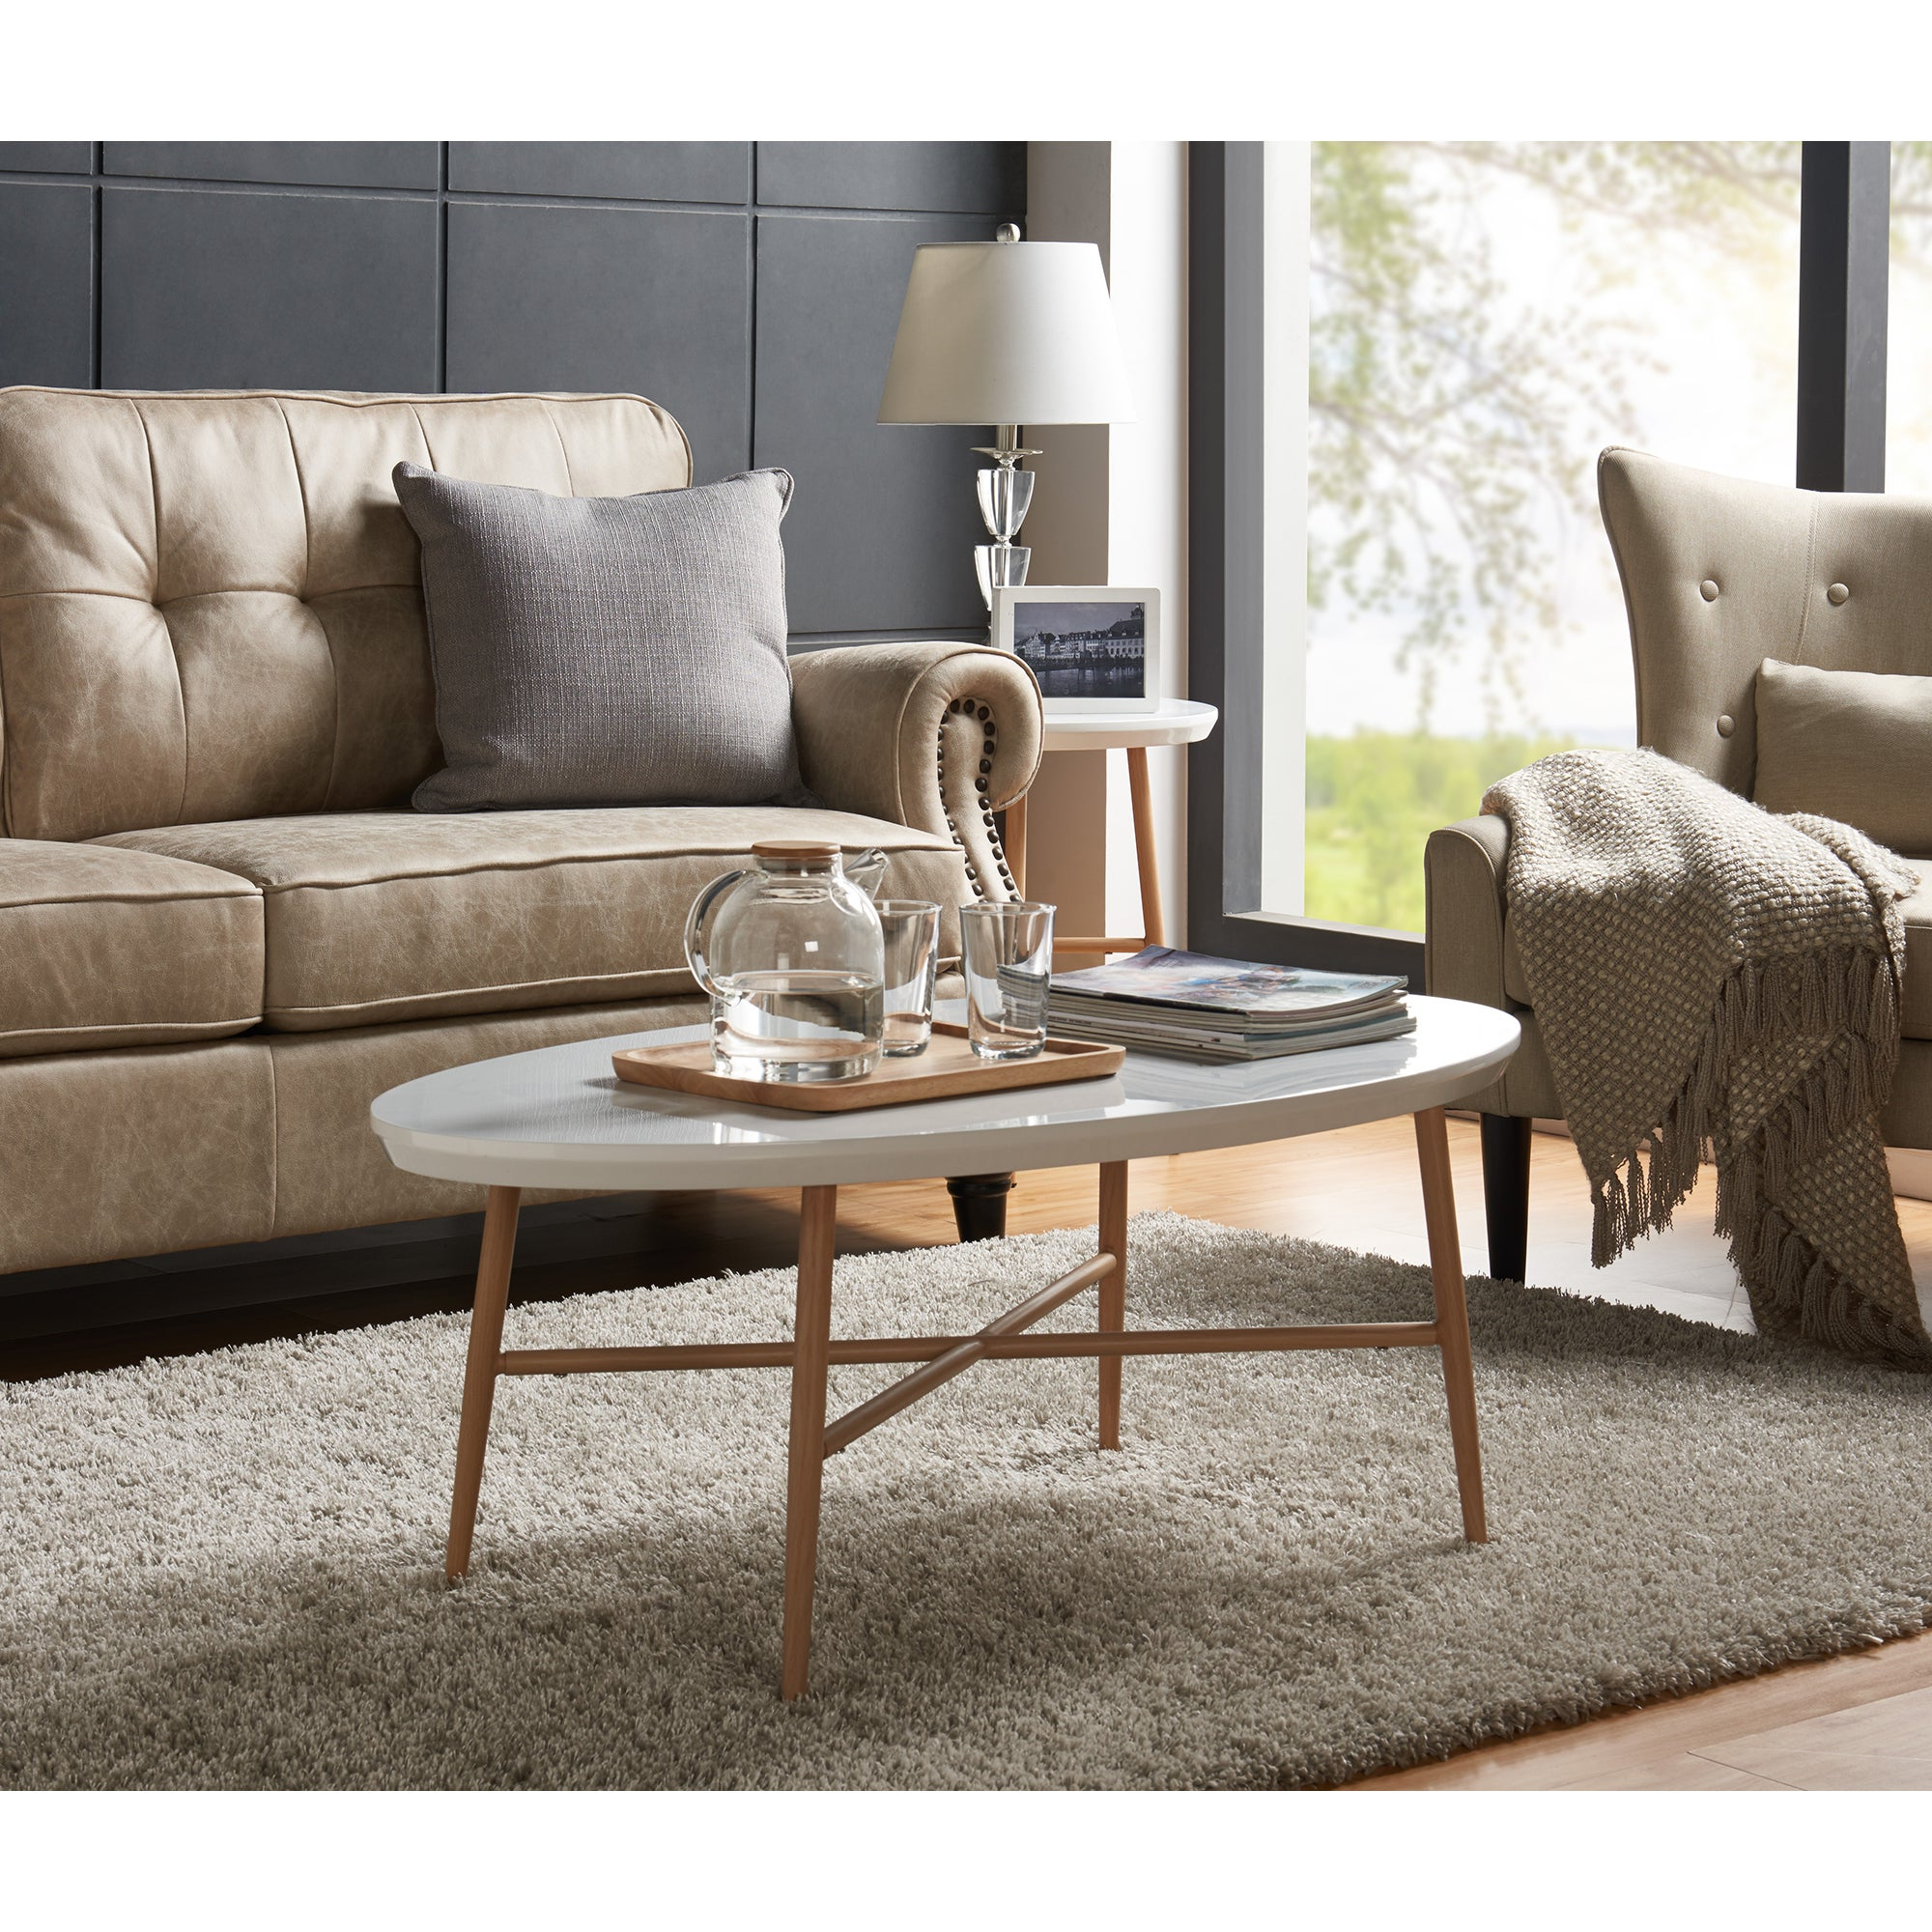 Current Handy Living Miami White Oval Coffee Tables With Brown Metal Legs With Regard To Handy Living Miami White Oval Coffee Table With Light Oak Metal Legs (View 16 of 20)